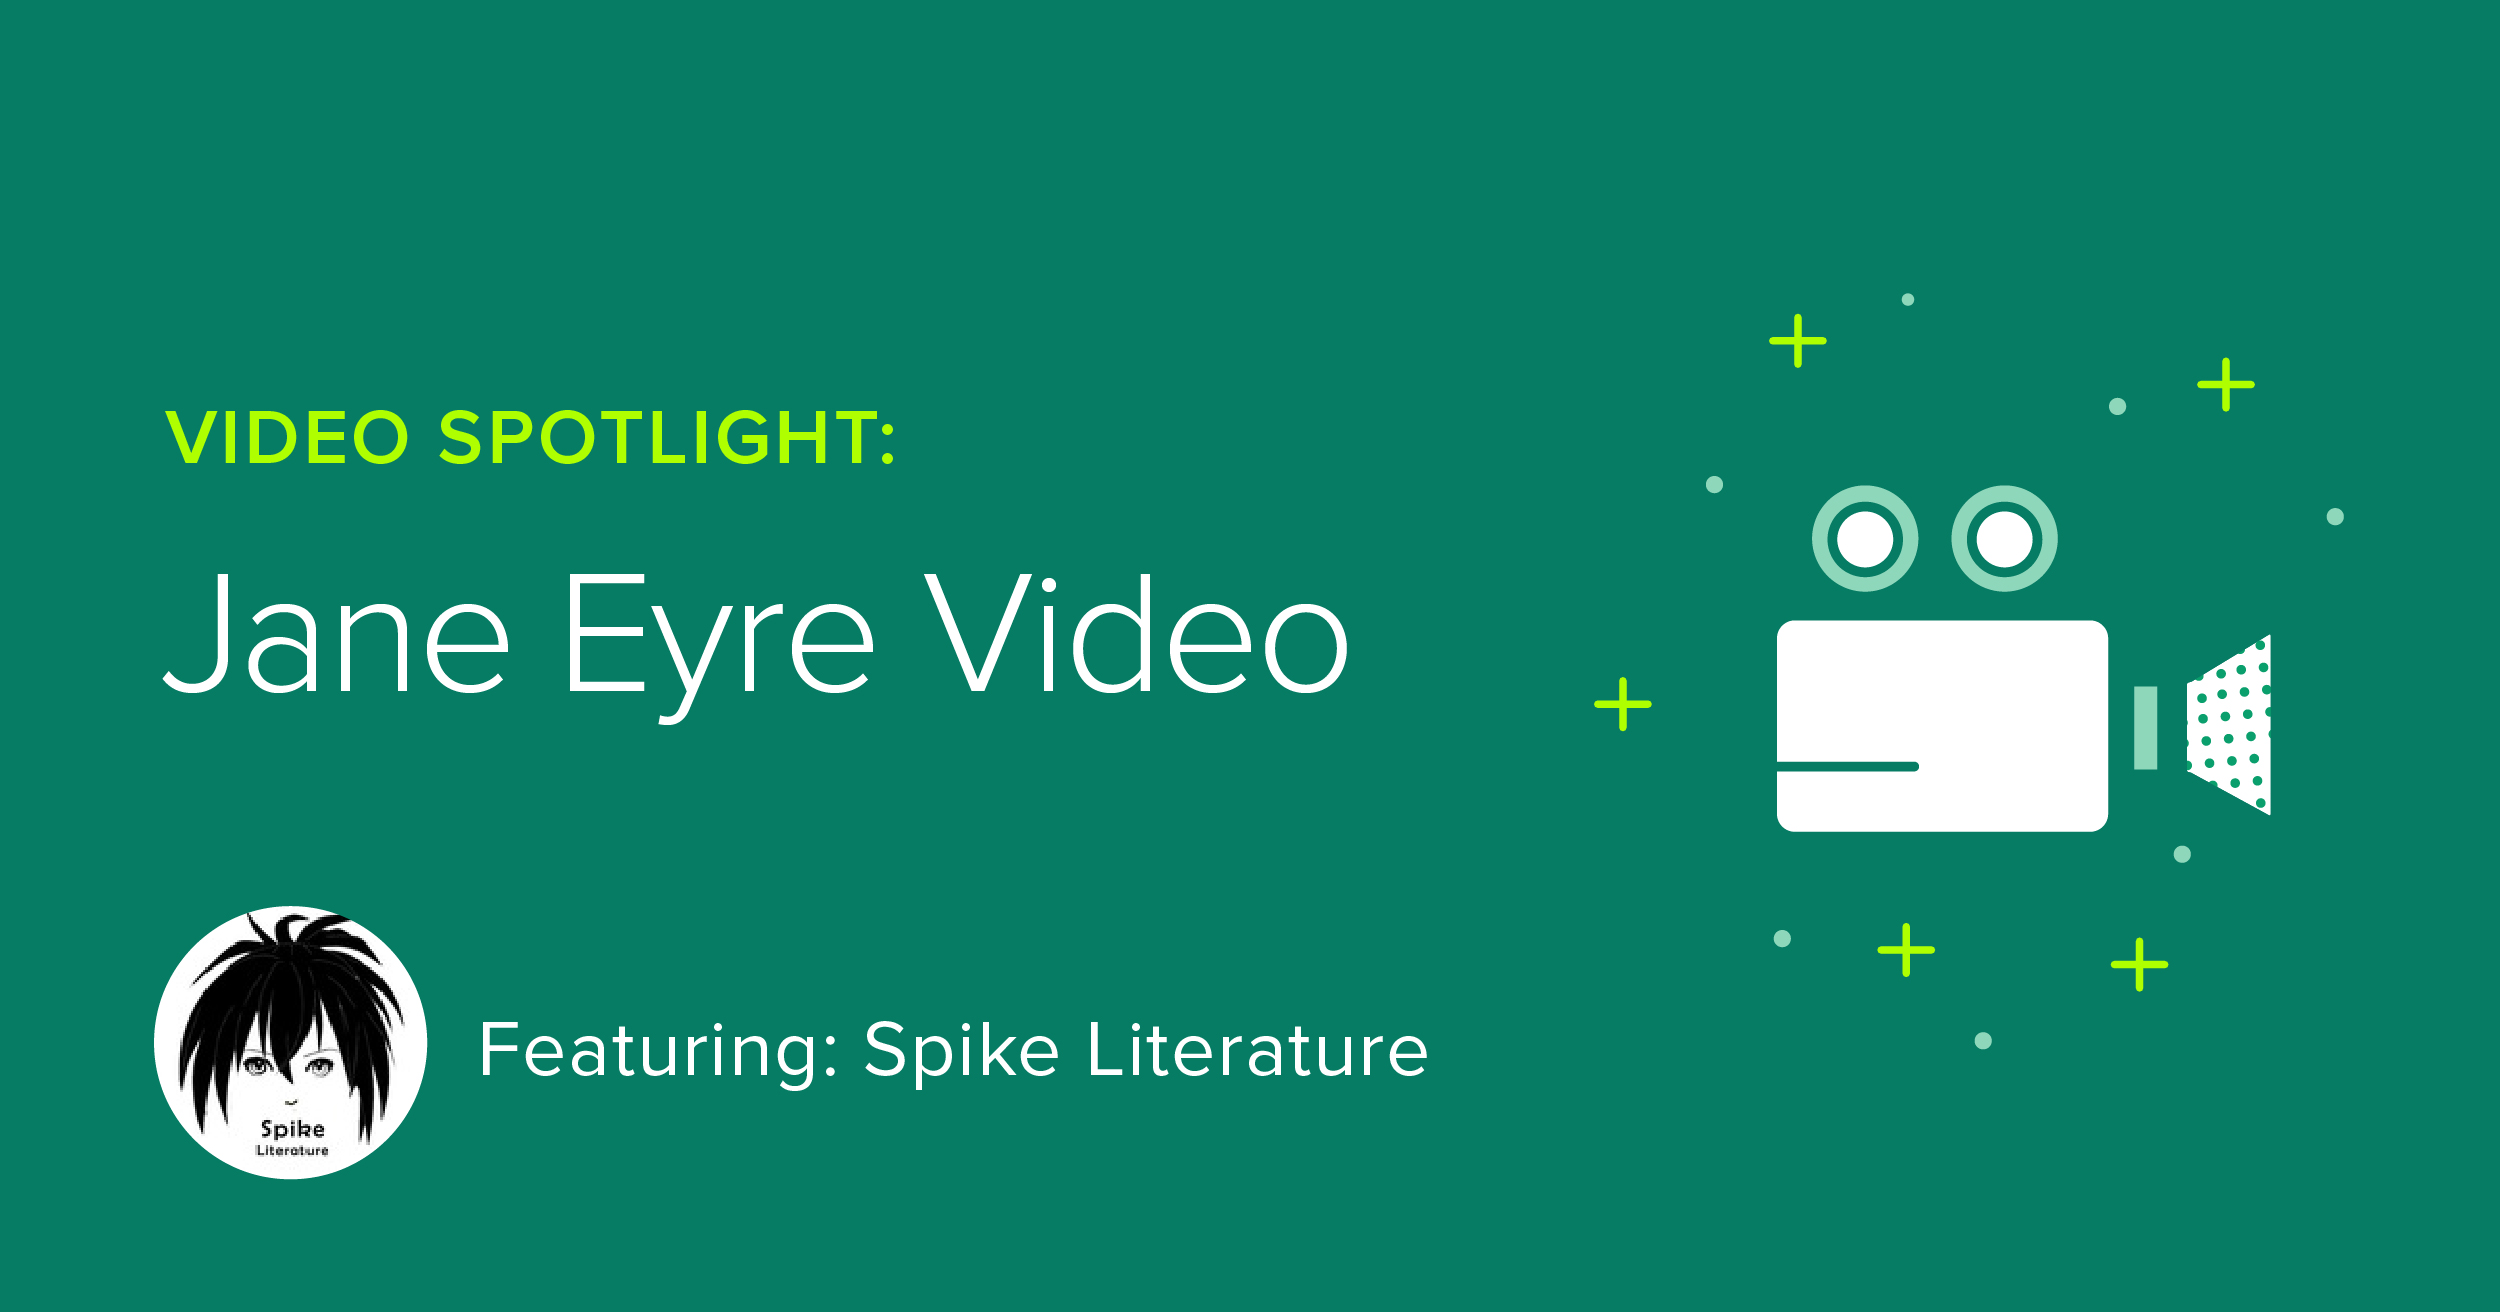 """There is a meaningful effect on students who watch someone enjoy teaching a subject they love"", says Spike Literature about creating Video on TpT."